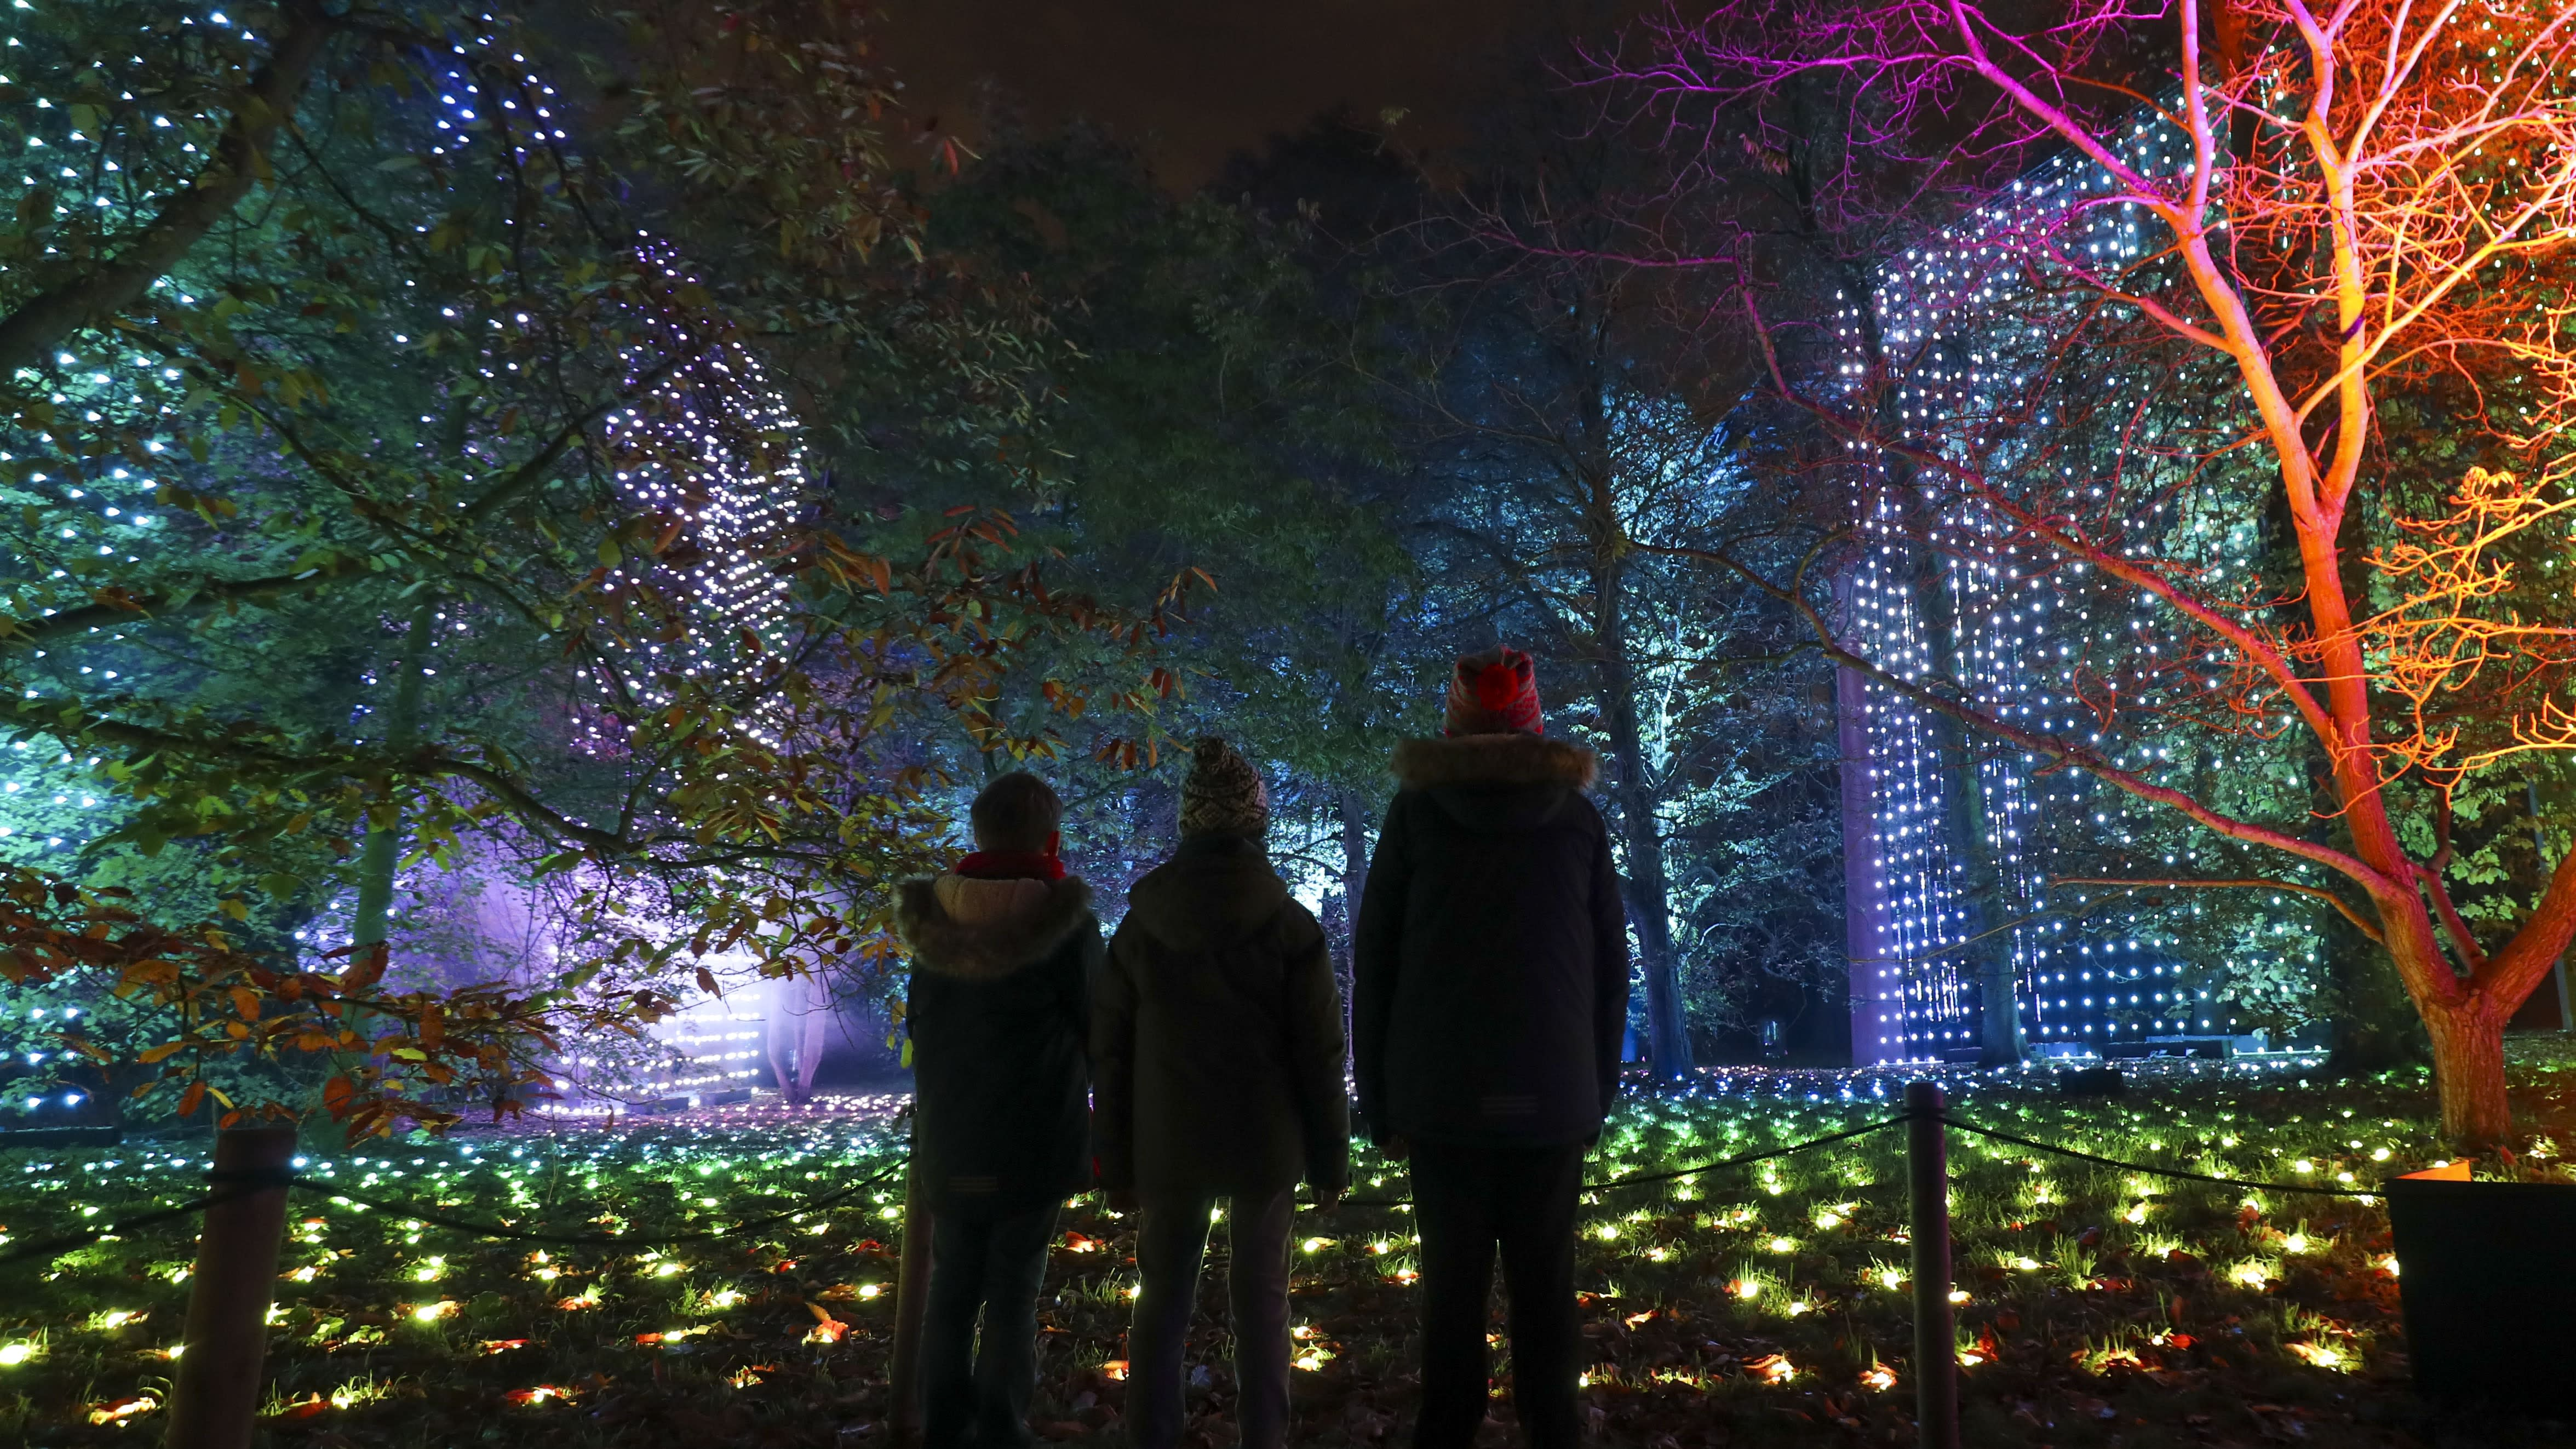 In Pictures: Spectacular Christmas light show at Kew Gardens